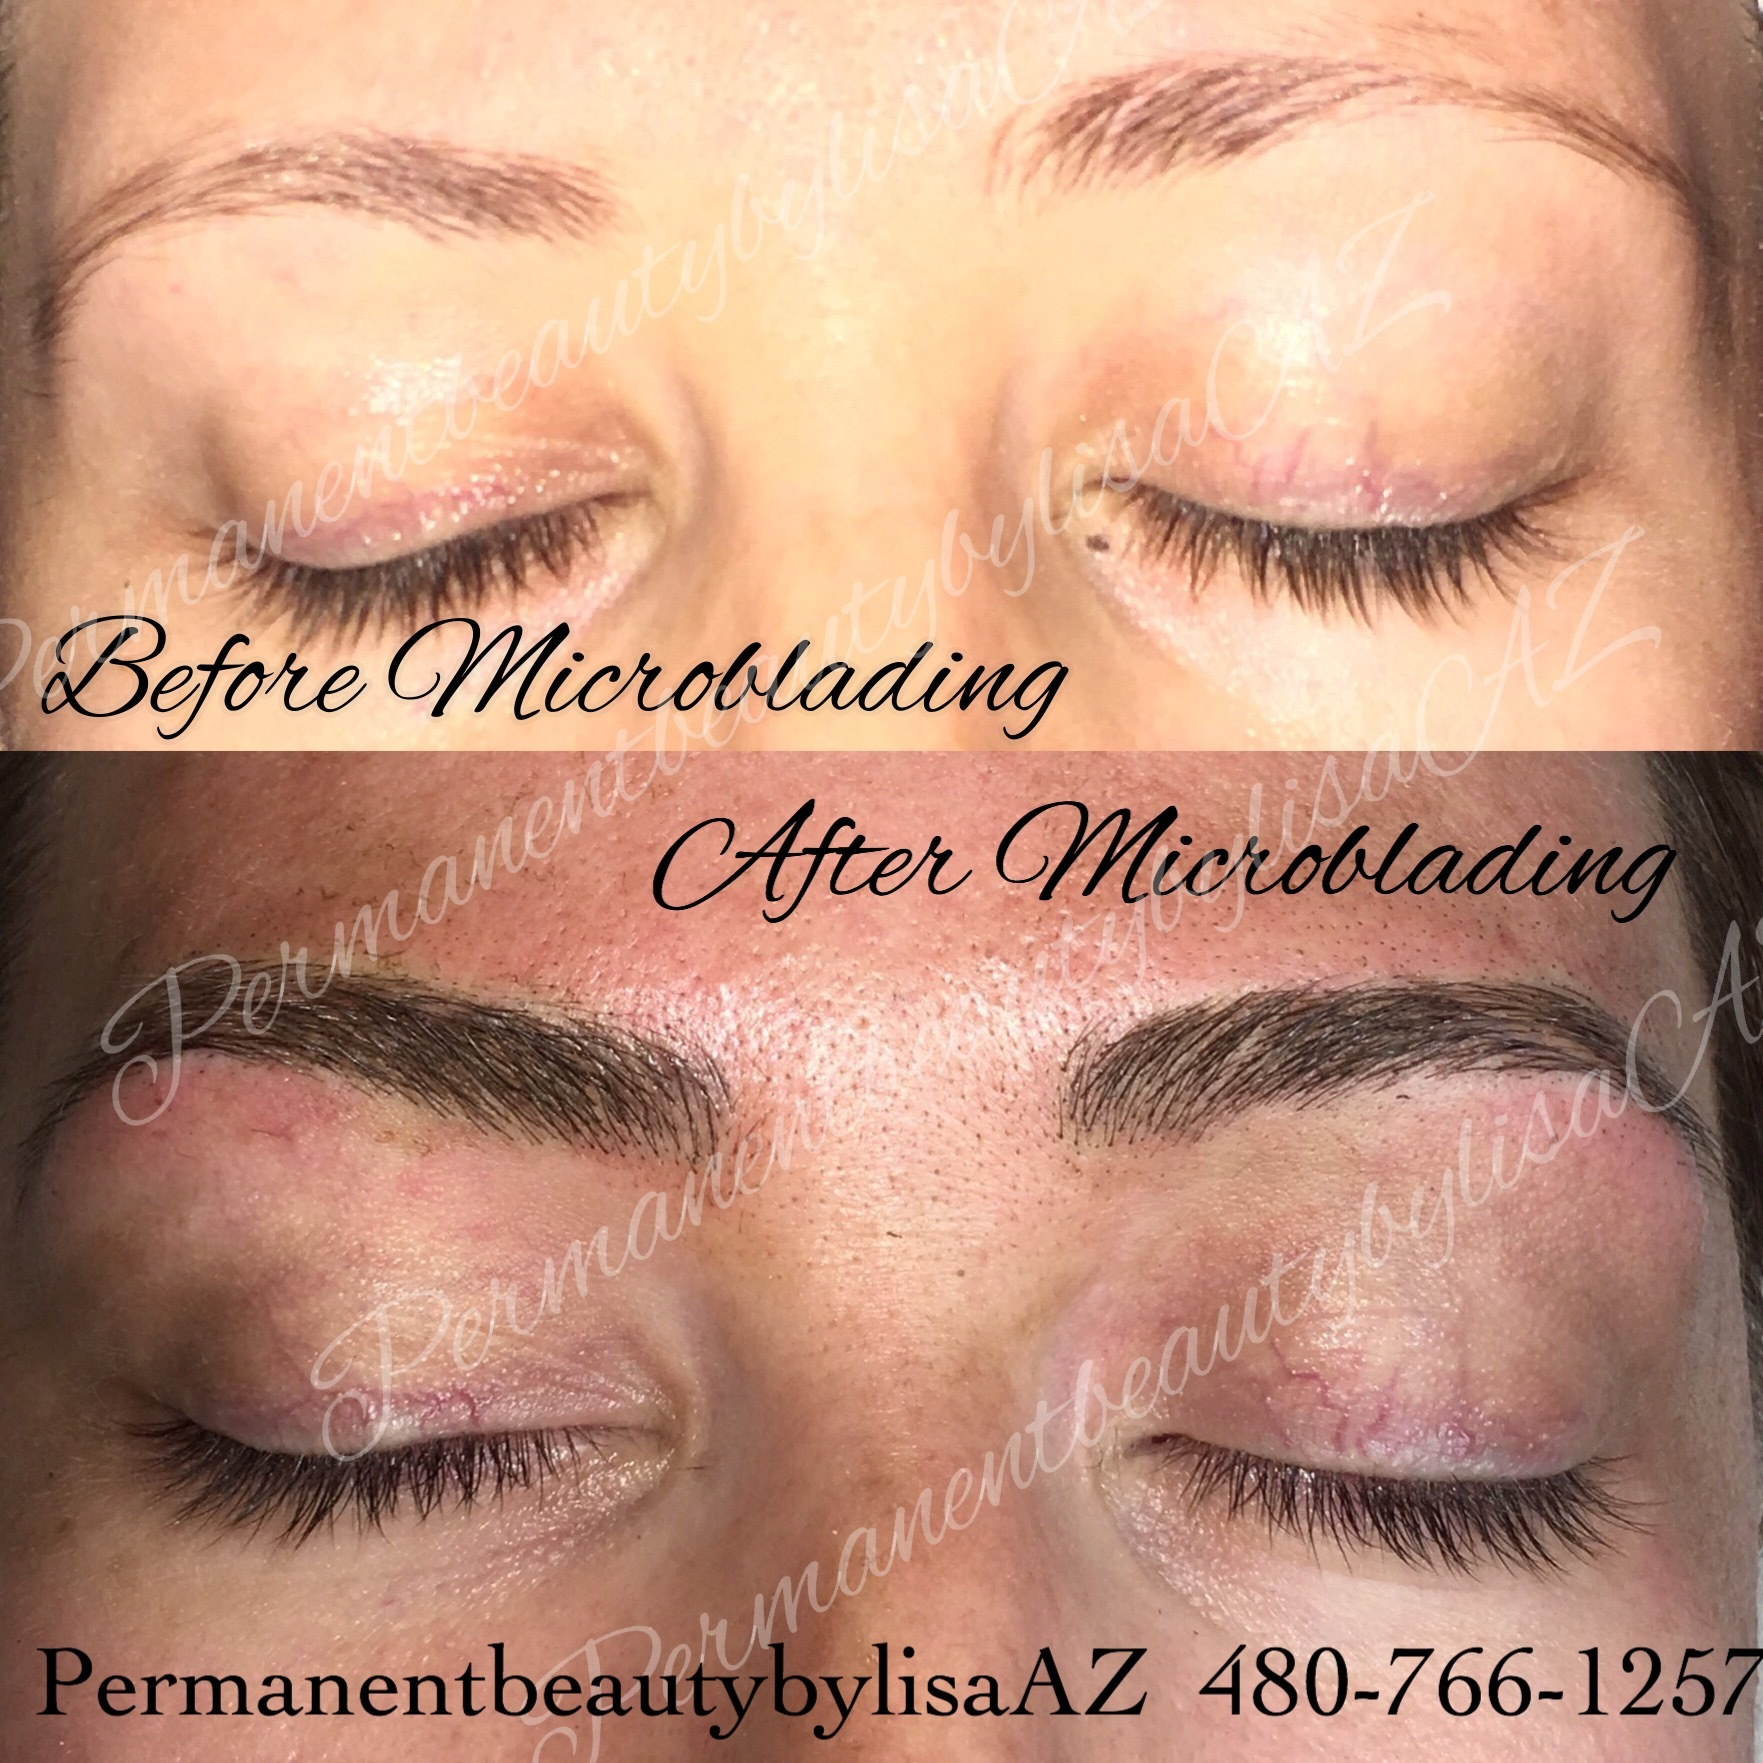 Getting Ready to Have Permanent Makeup or Microblading